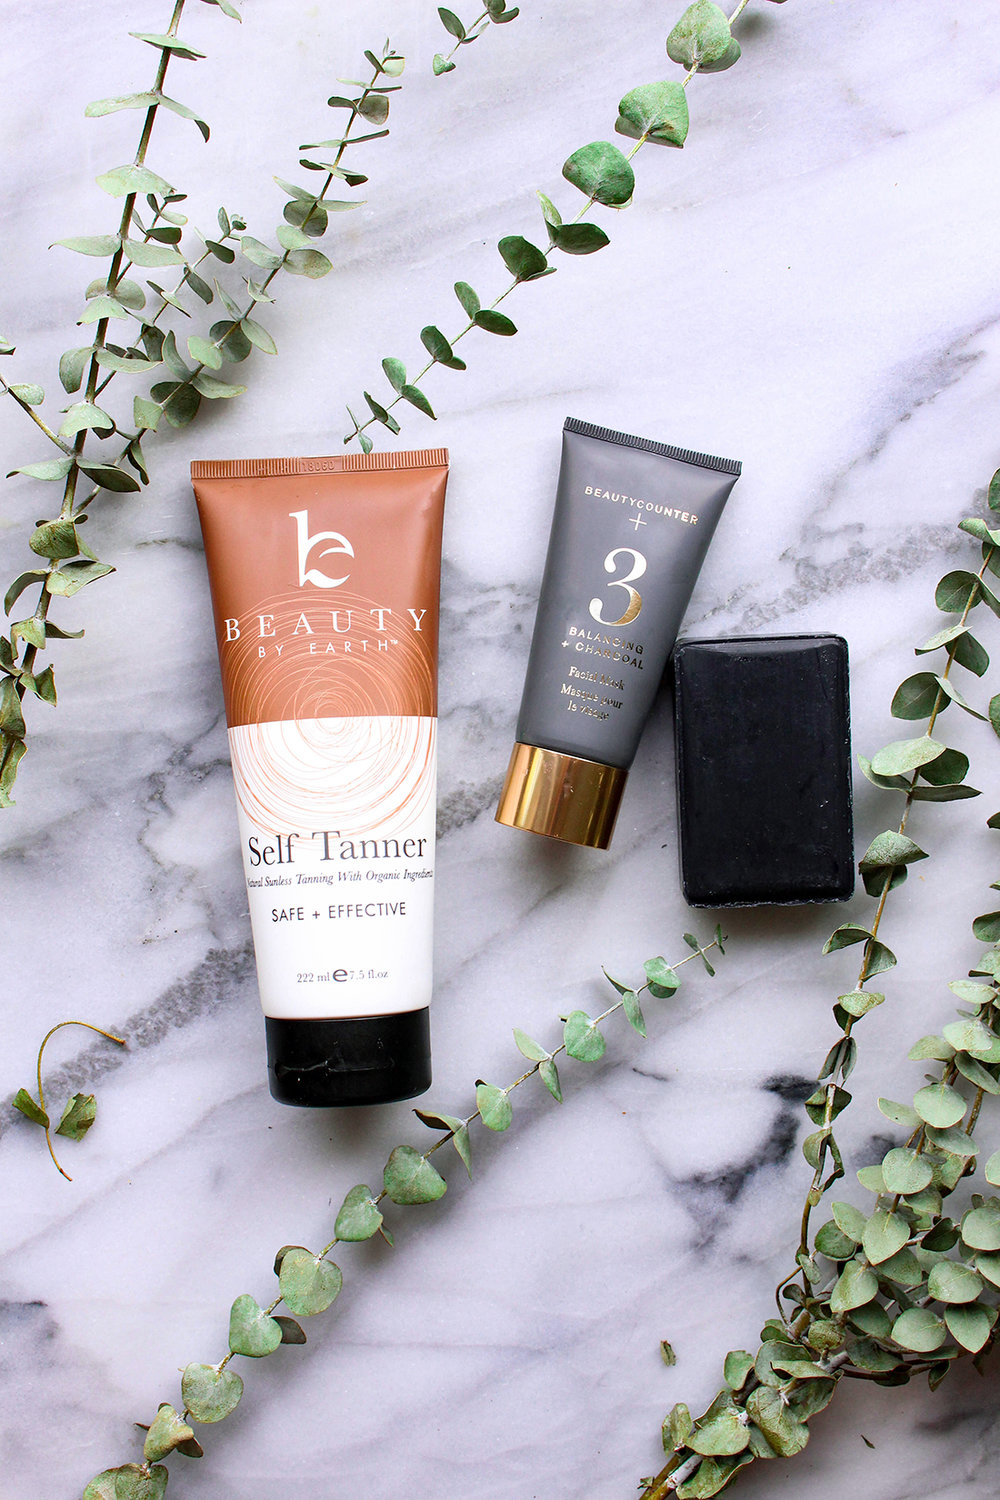 Beauty By Earth Self Tanner && Beautycounter Charcoal Bar + No. 3 Balancing Facial Mask